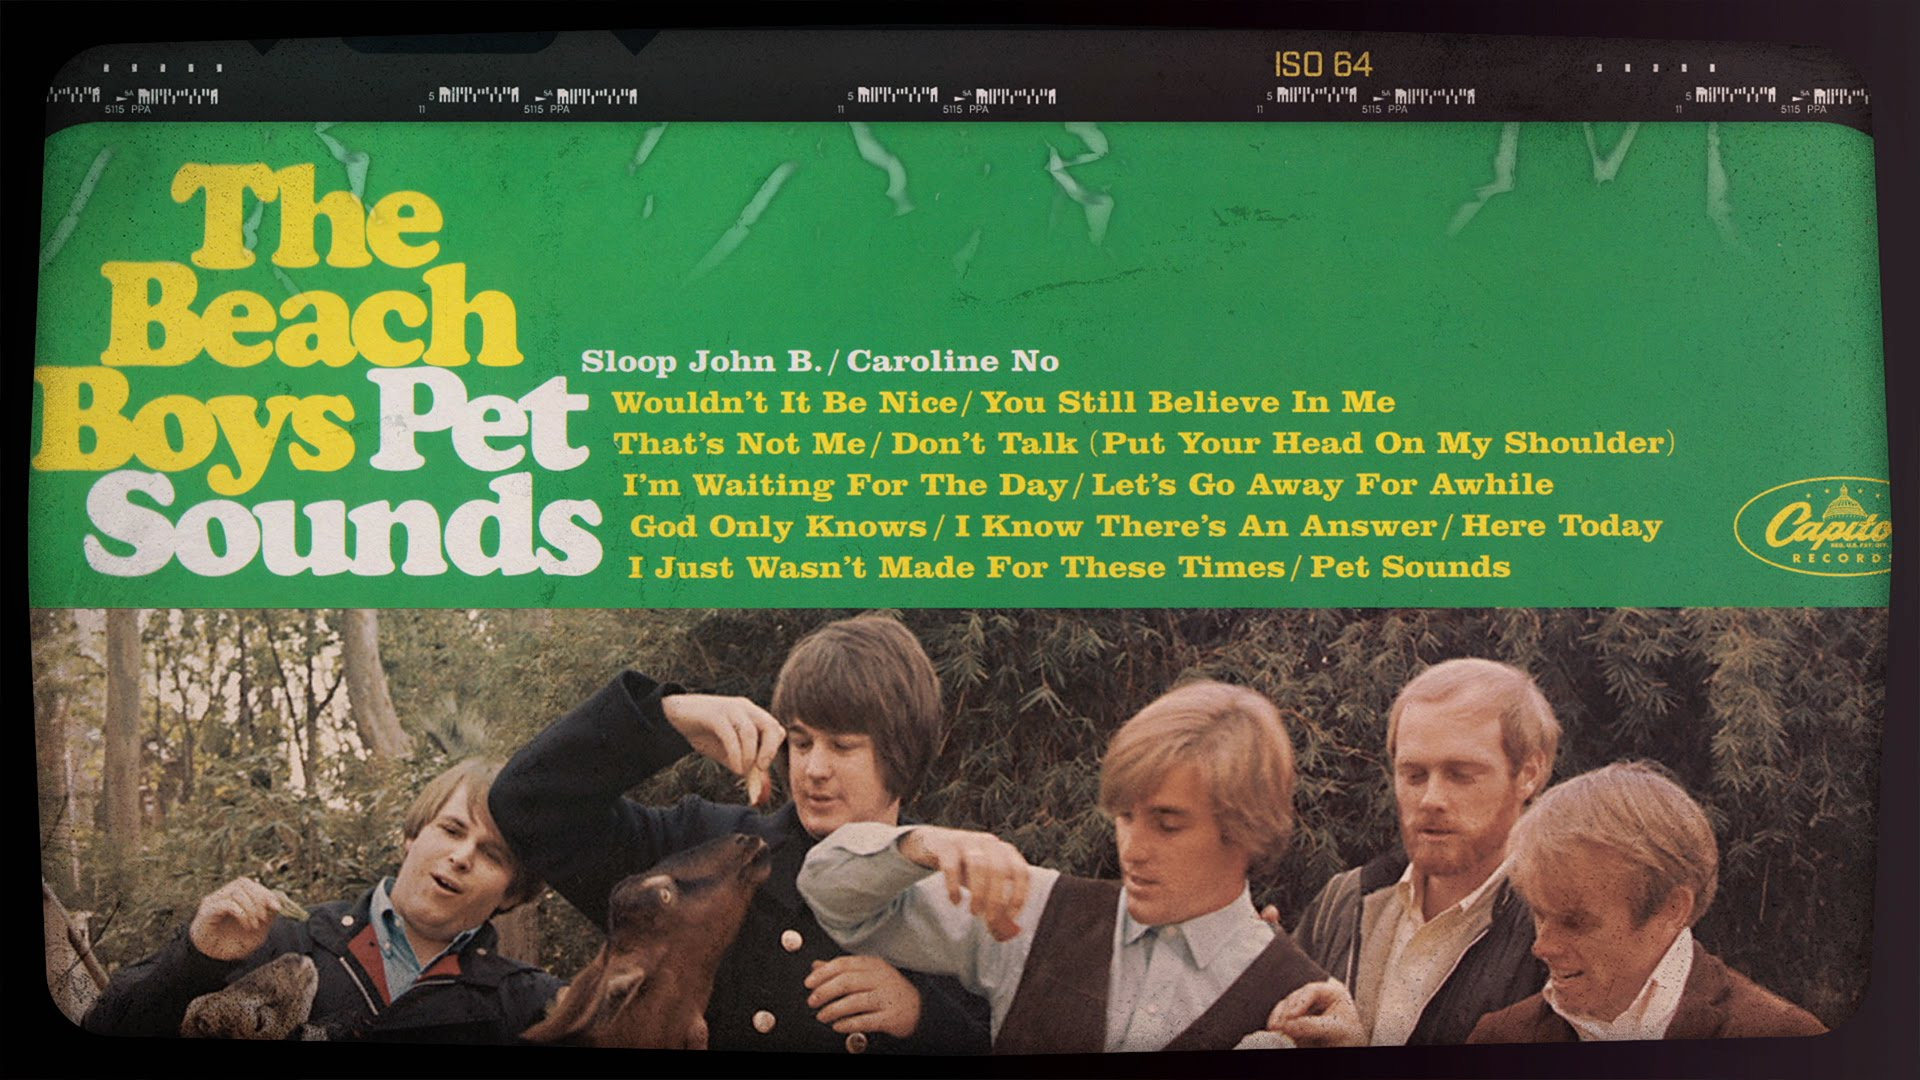 The Lasting Effect That the Beach Boys Iconic 'Pet Sounds' Concept Album Has Had On Music